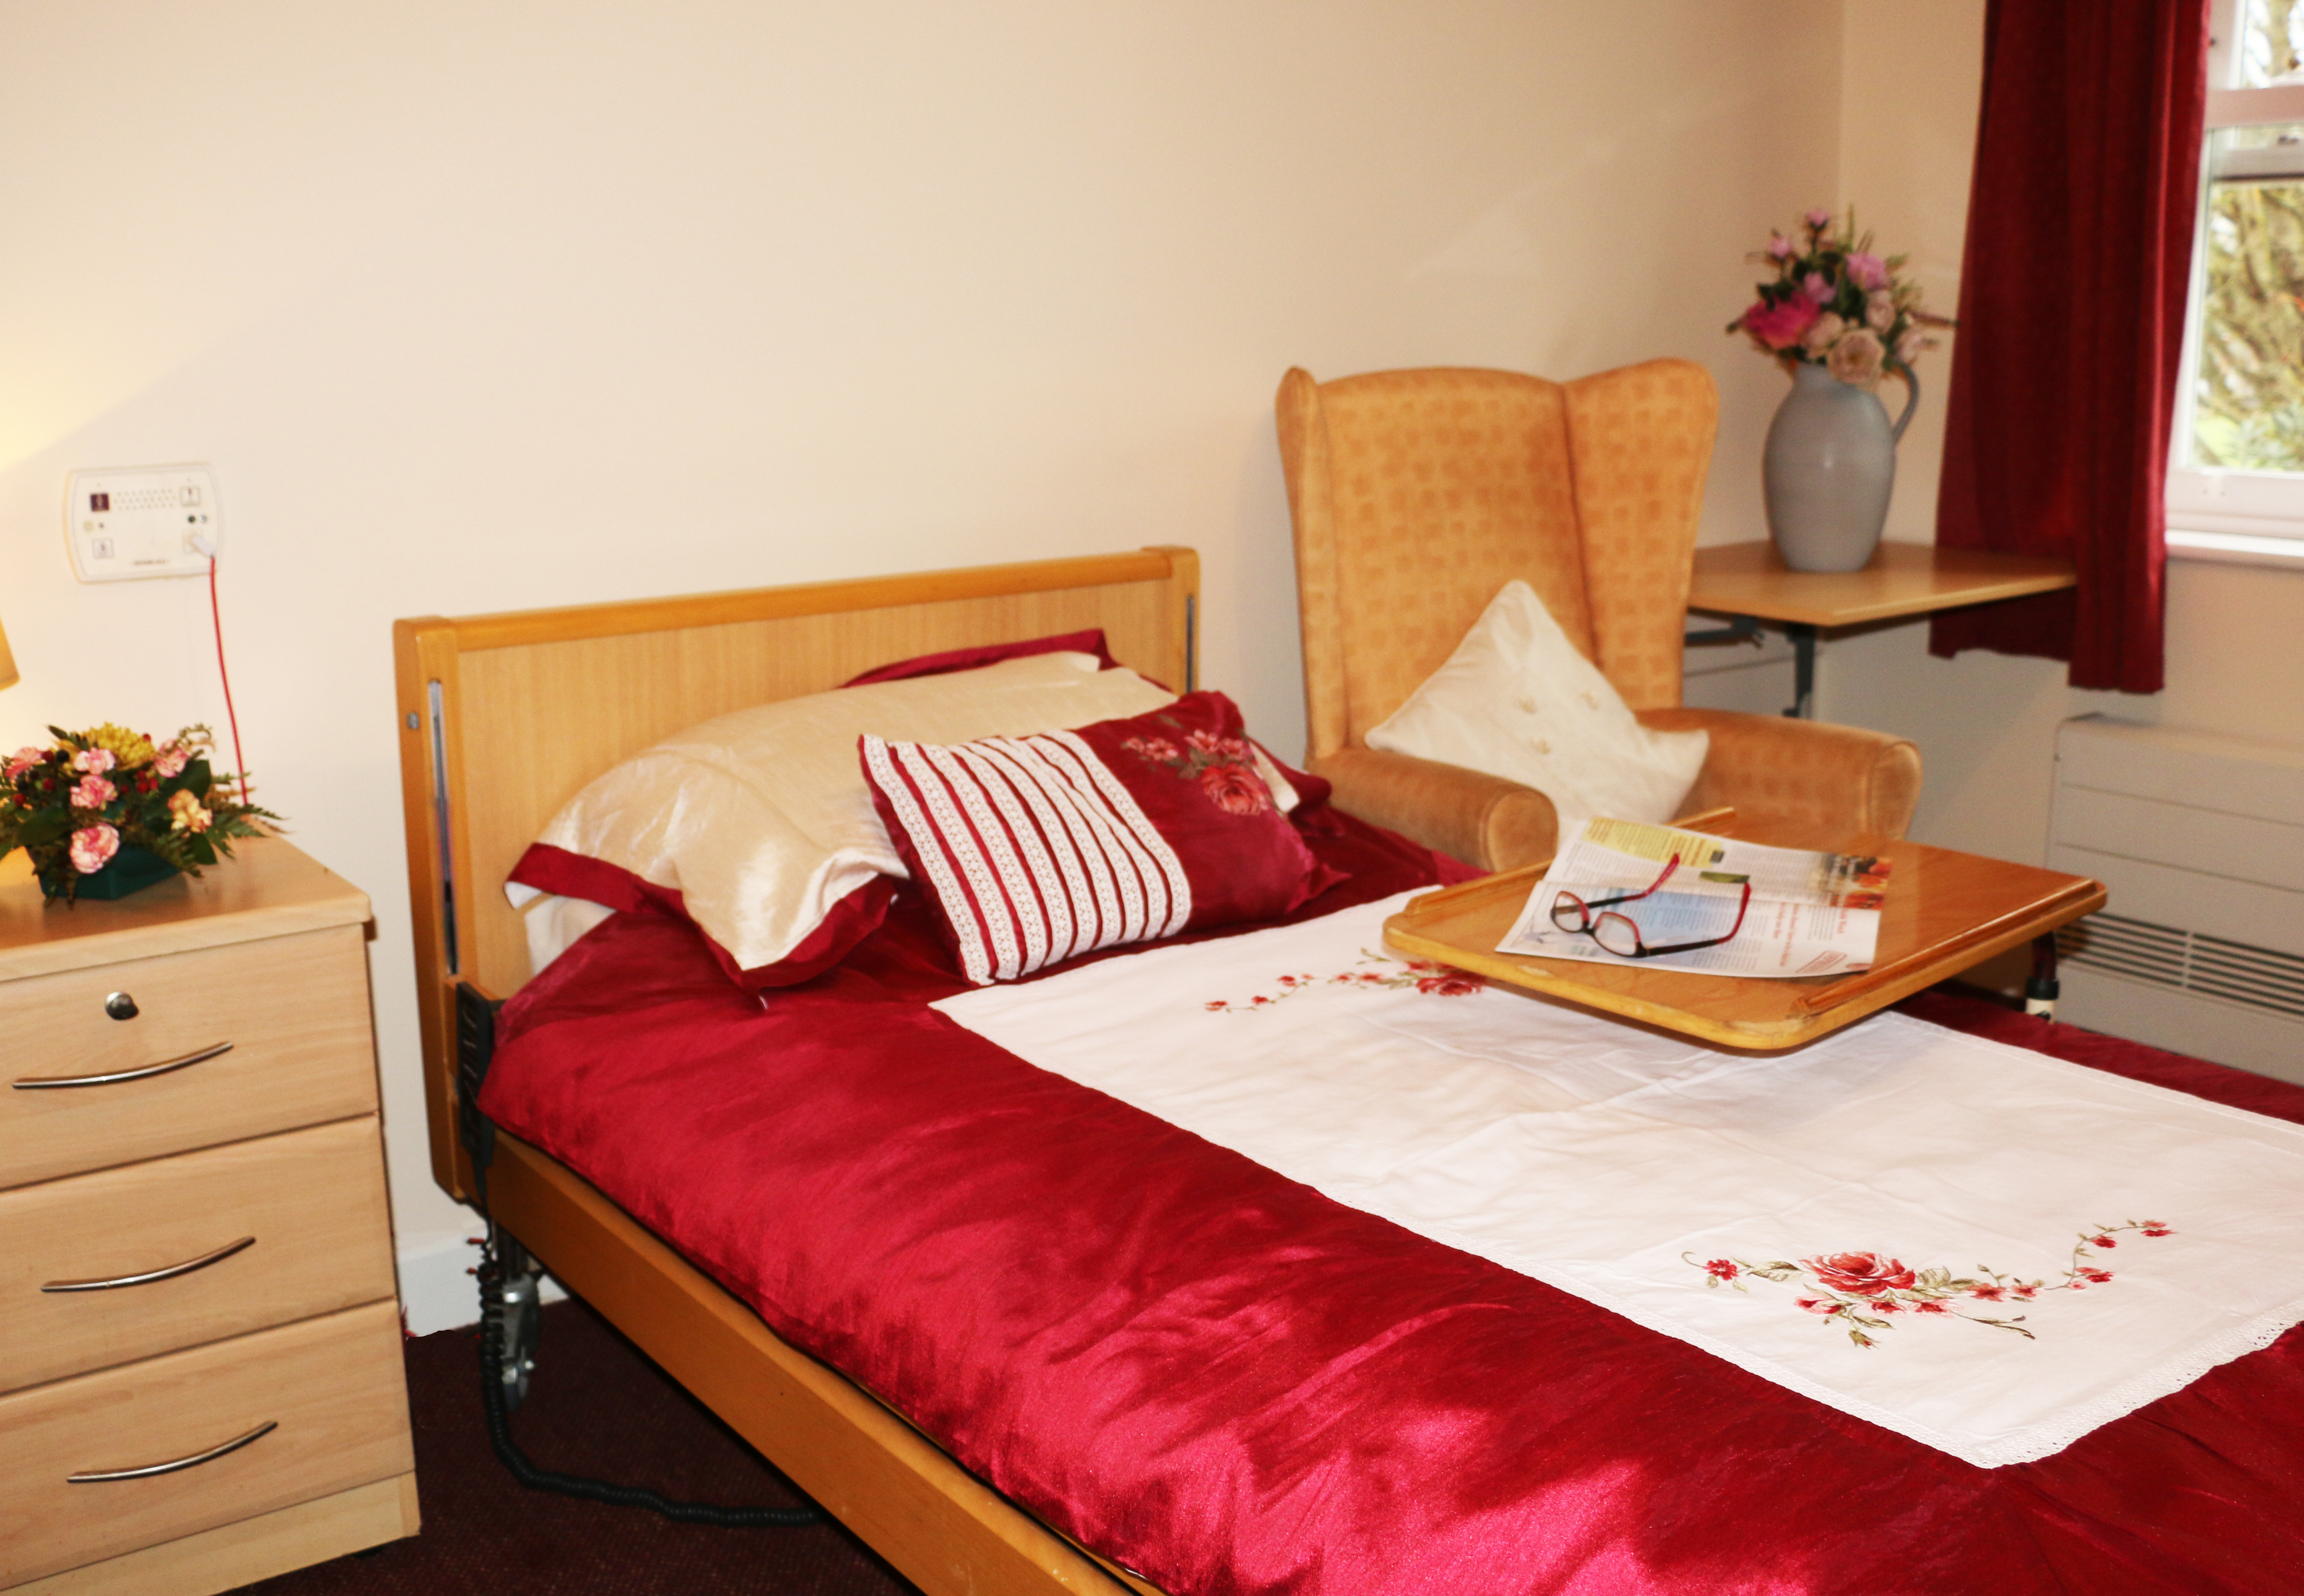 A Linfield bedroom showing a bed with red sheets